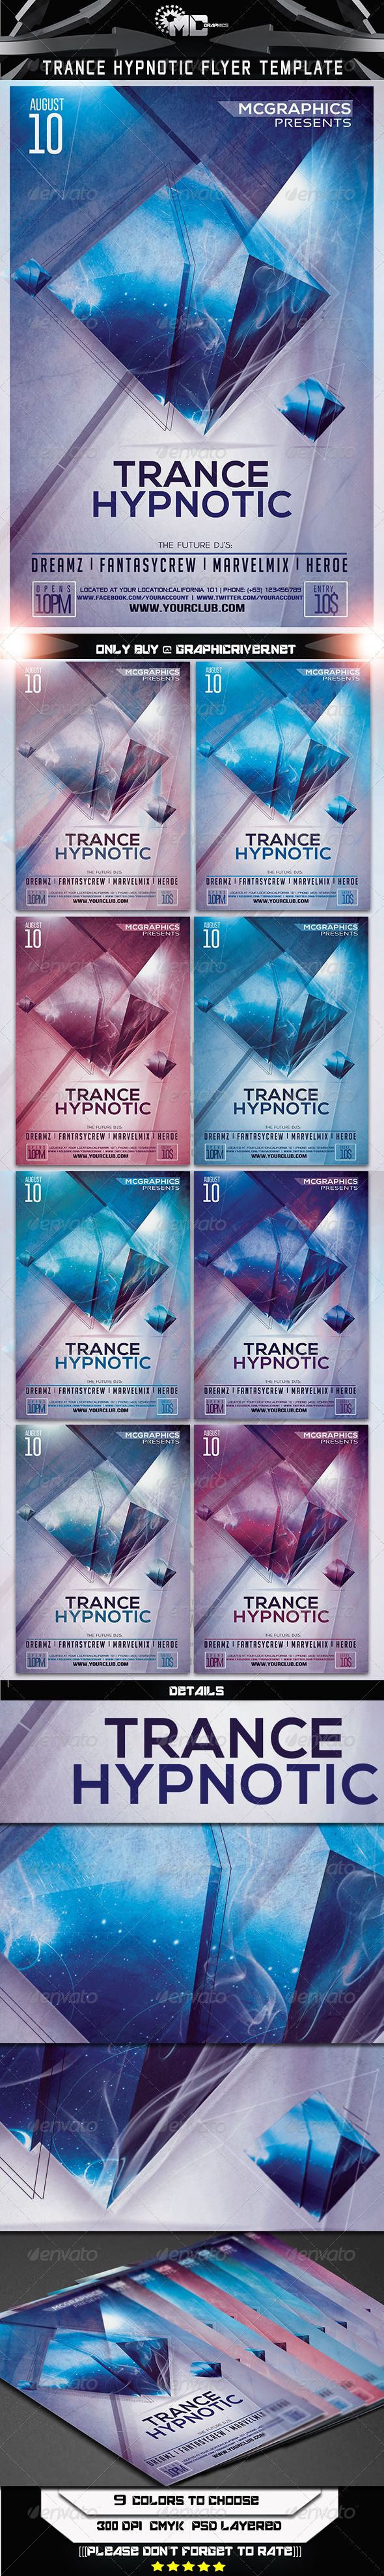 GraphicRiver Trance Hypnotic Flyer Template 7185562